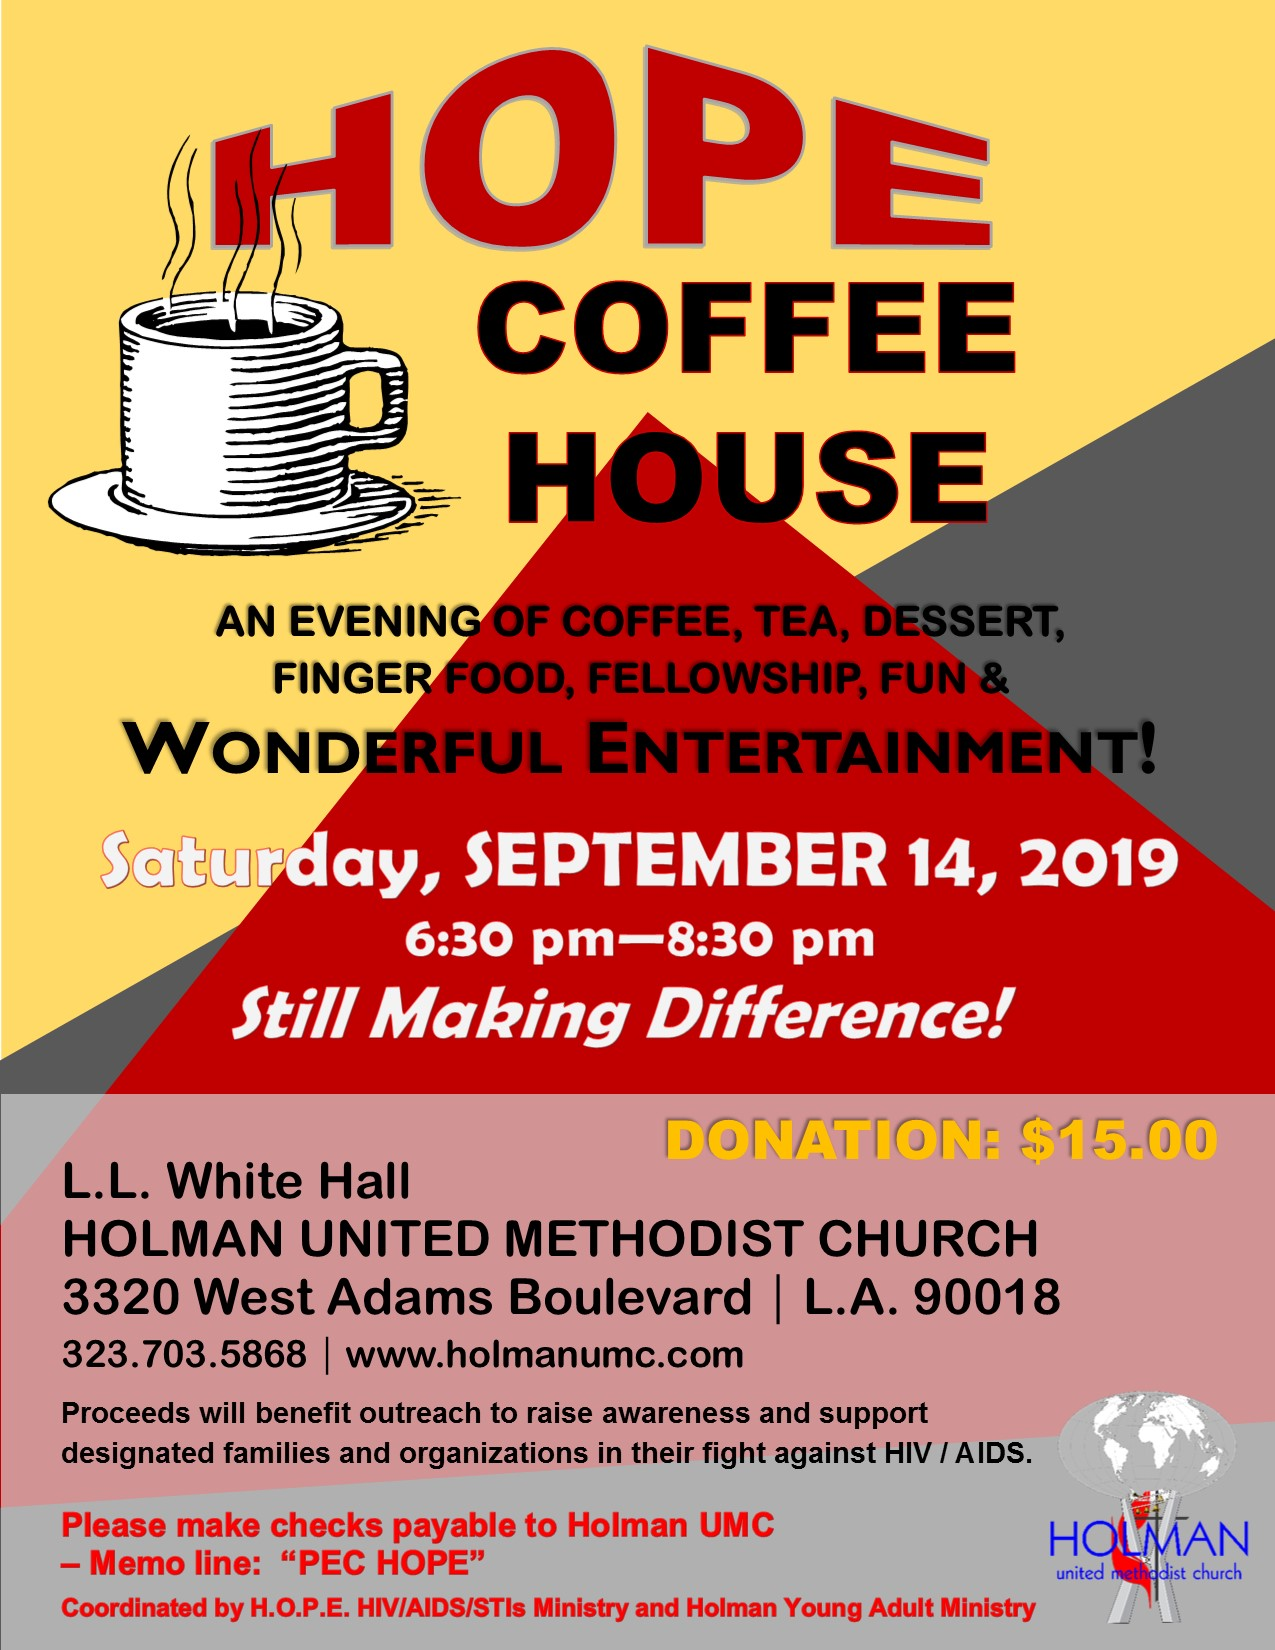 COFFEE_HOUSE_-_2019_-_FLYER.jpg